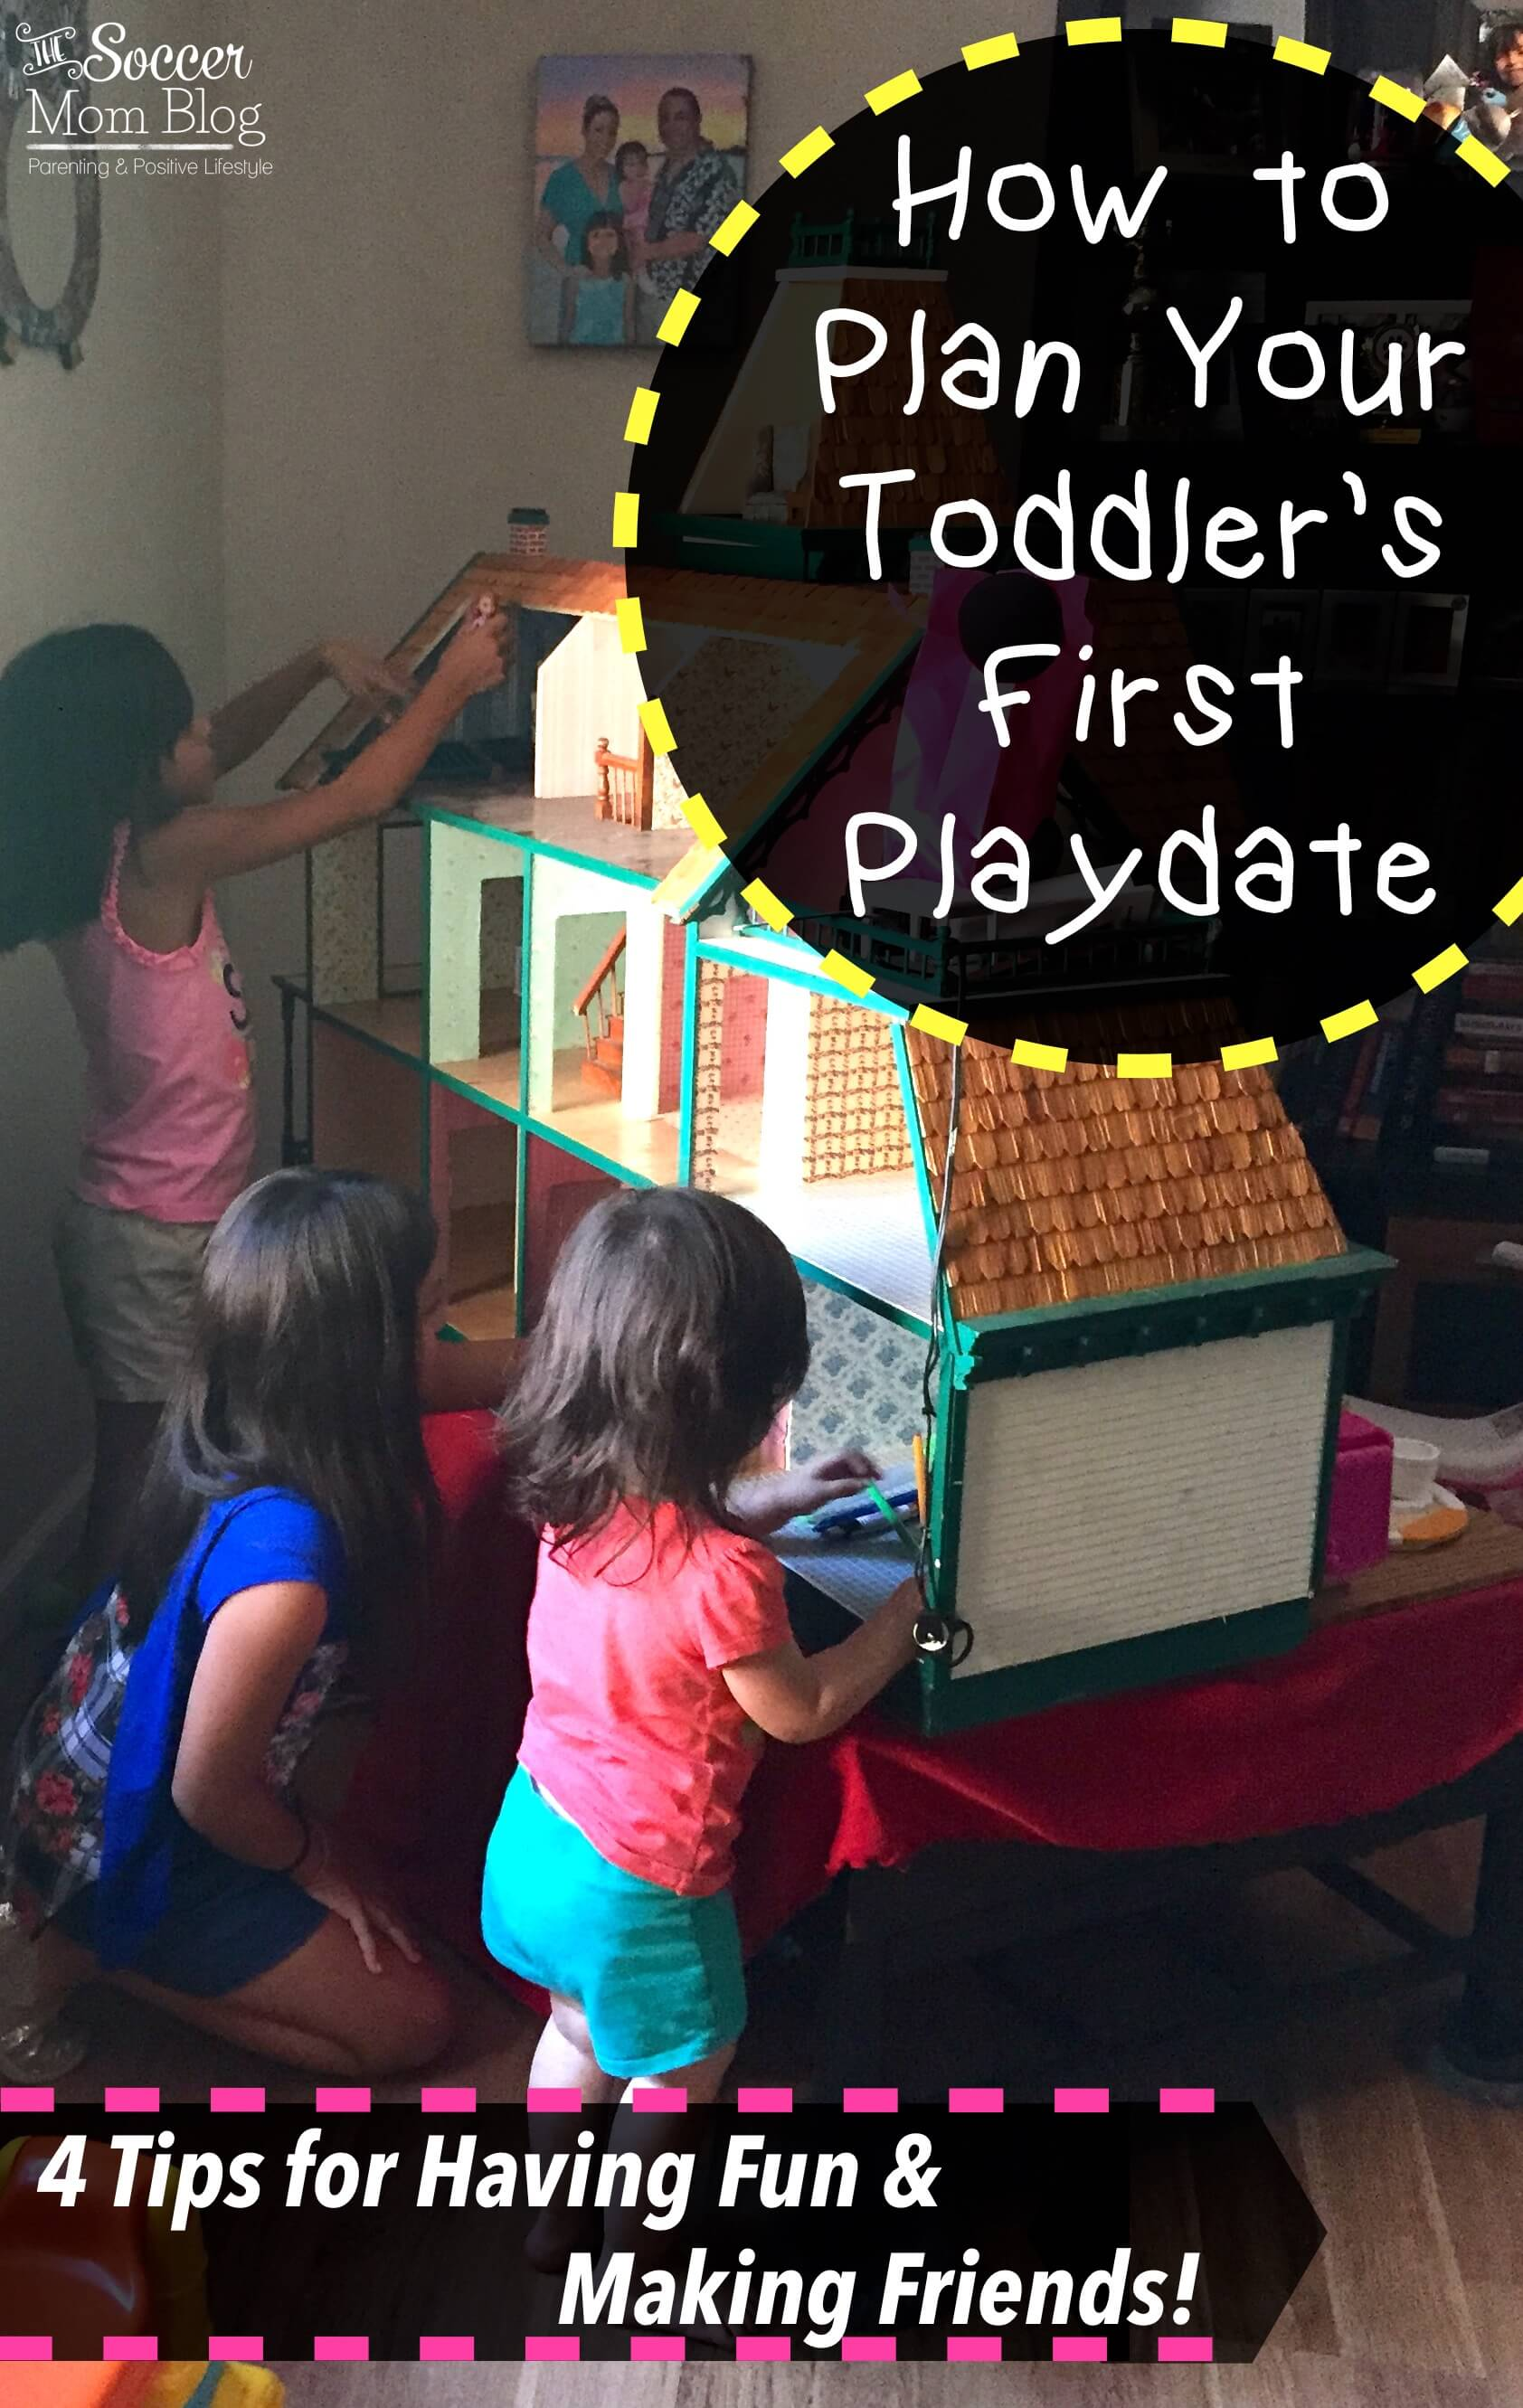 The idea of planning first playdates doesn't have to be intimidating or stressful! These four simple tricks will set you up for hours of fun and friendship for your toddler!